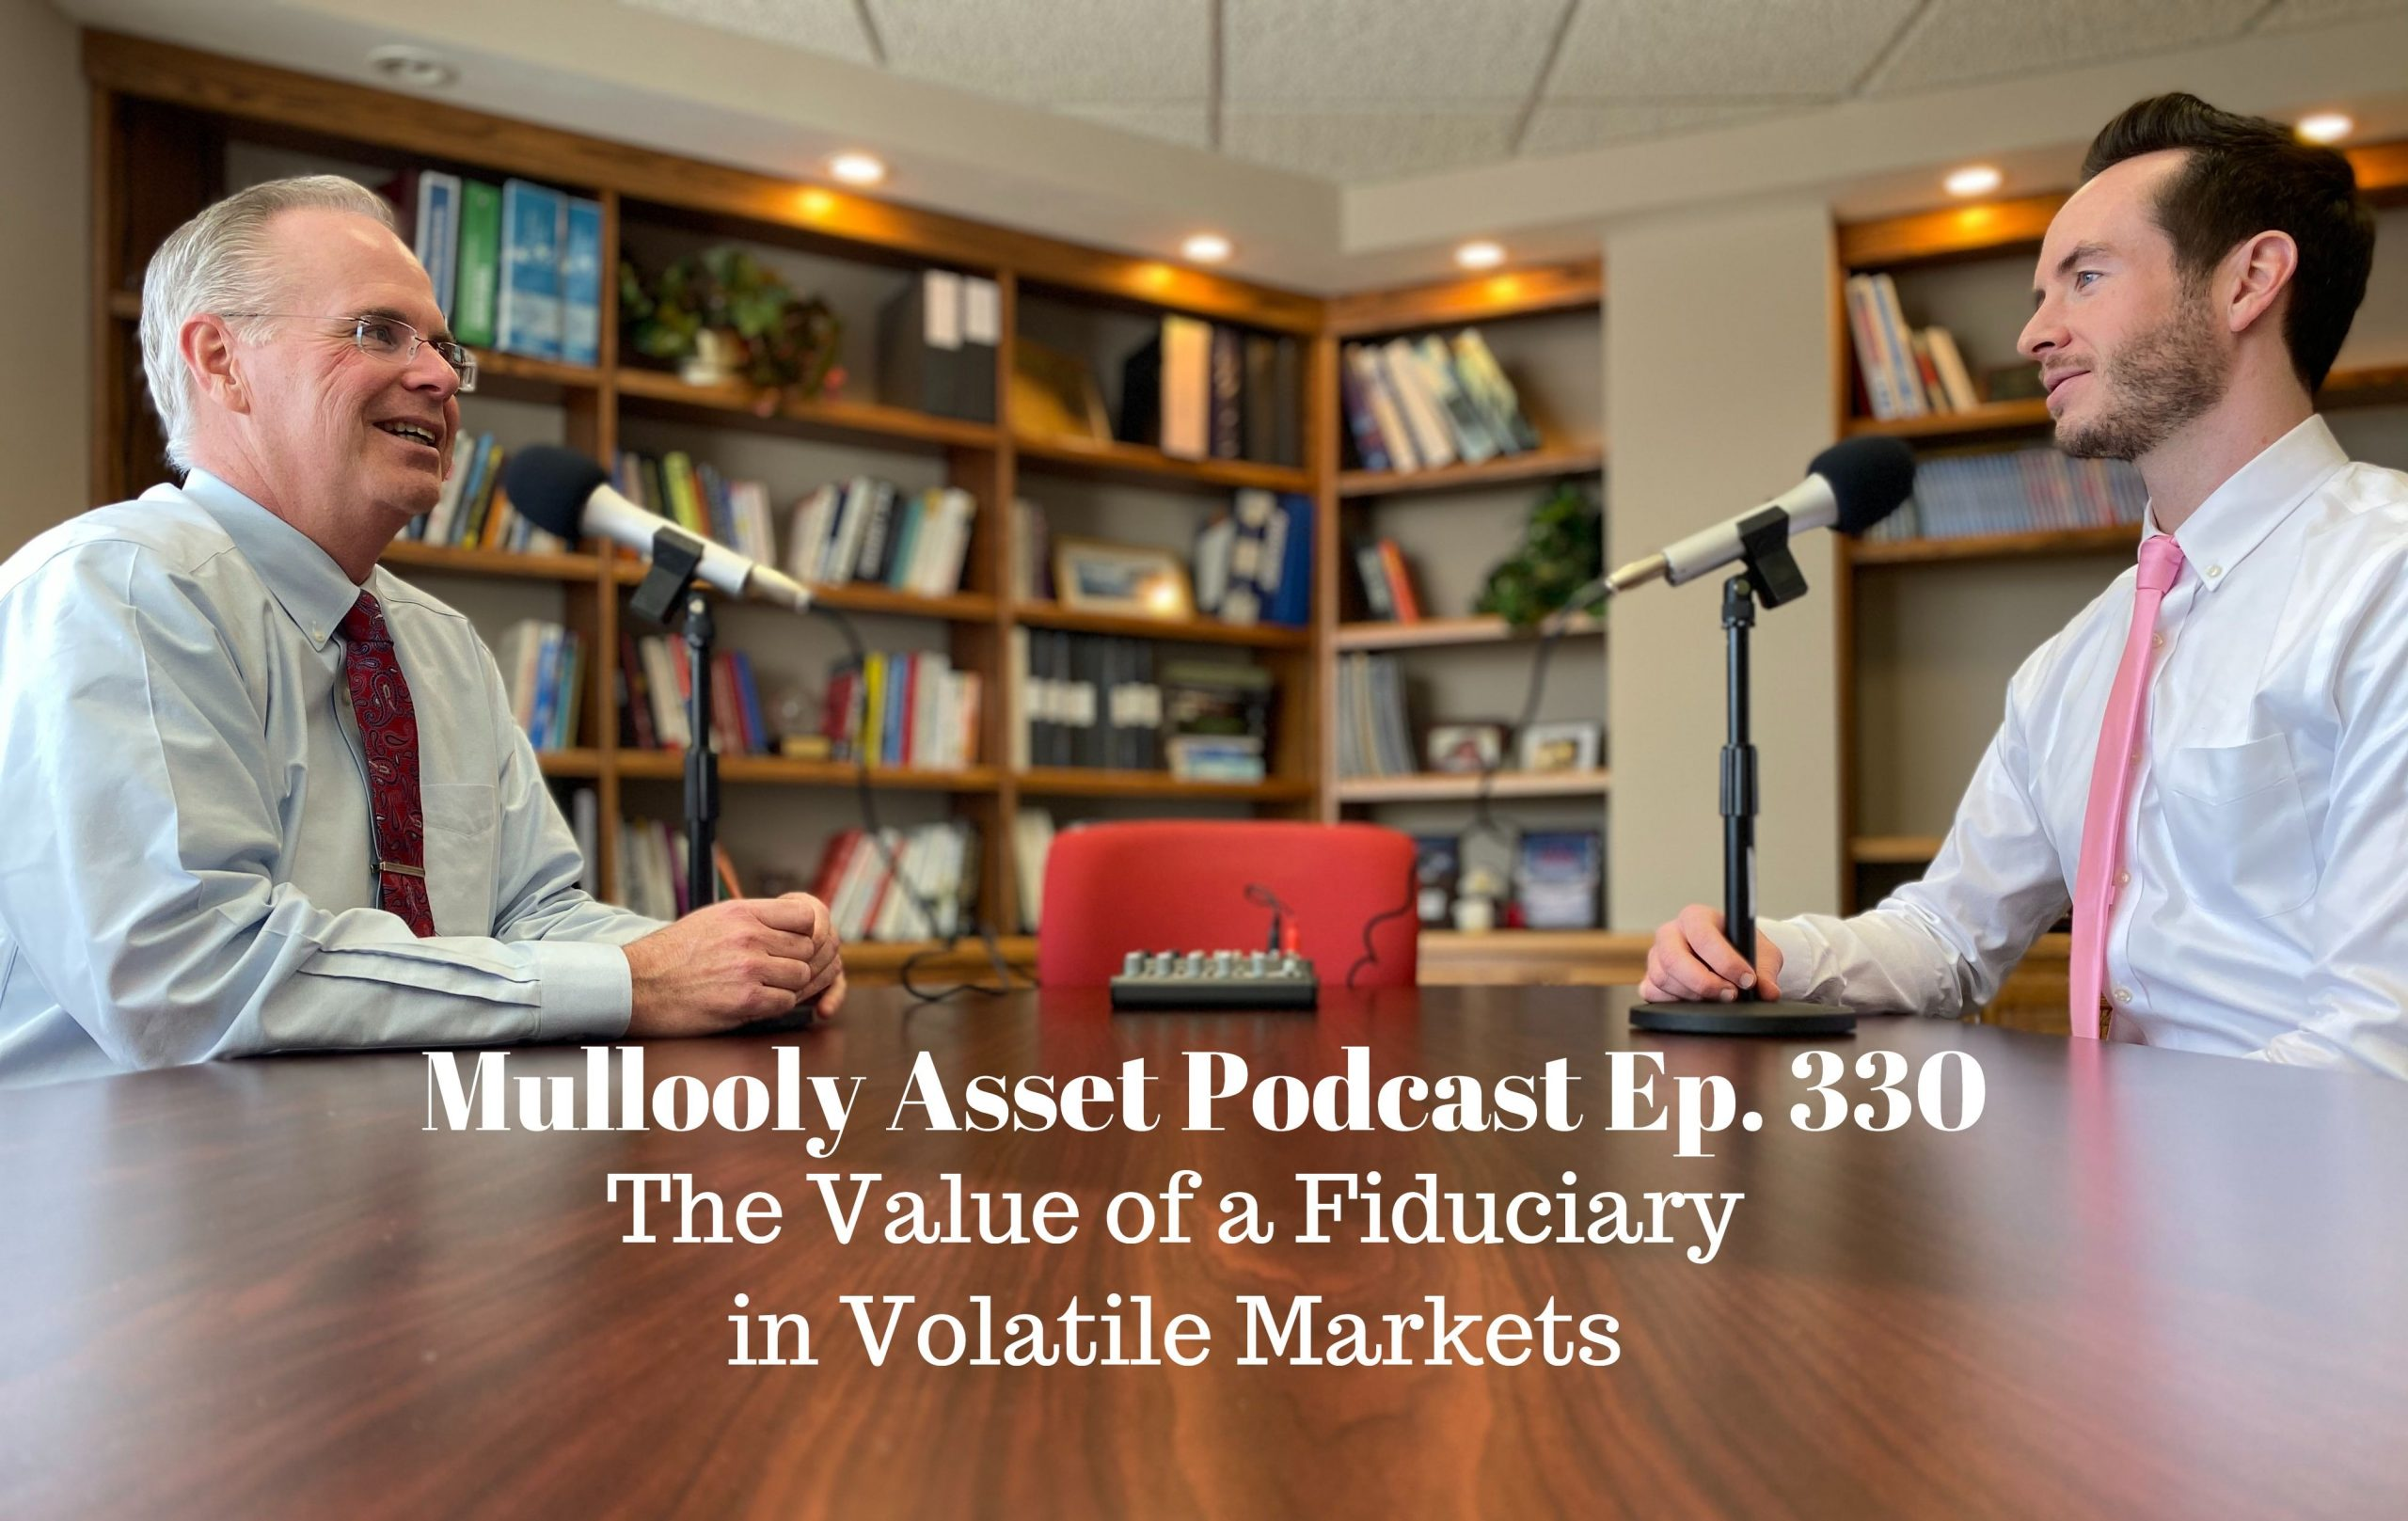 Value of a Fiduciary in Volatile Markets